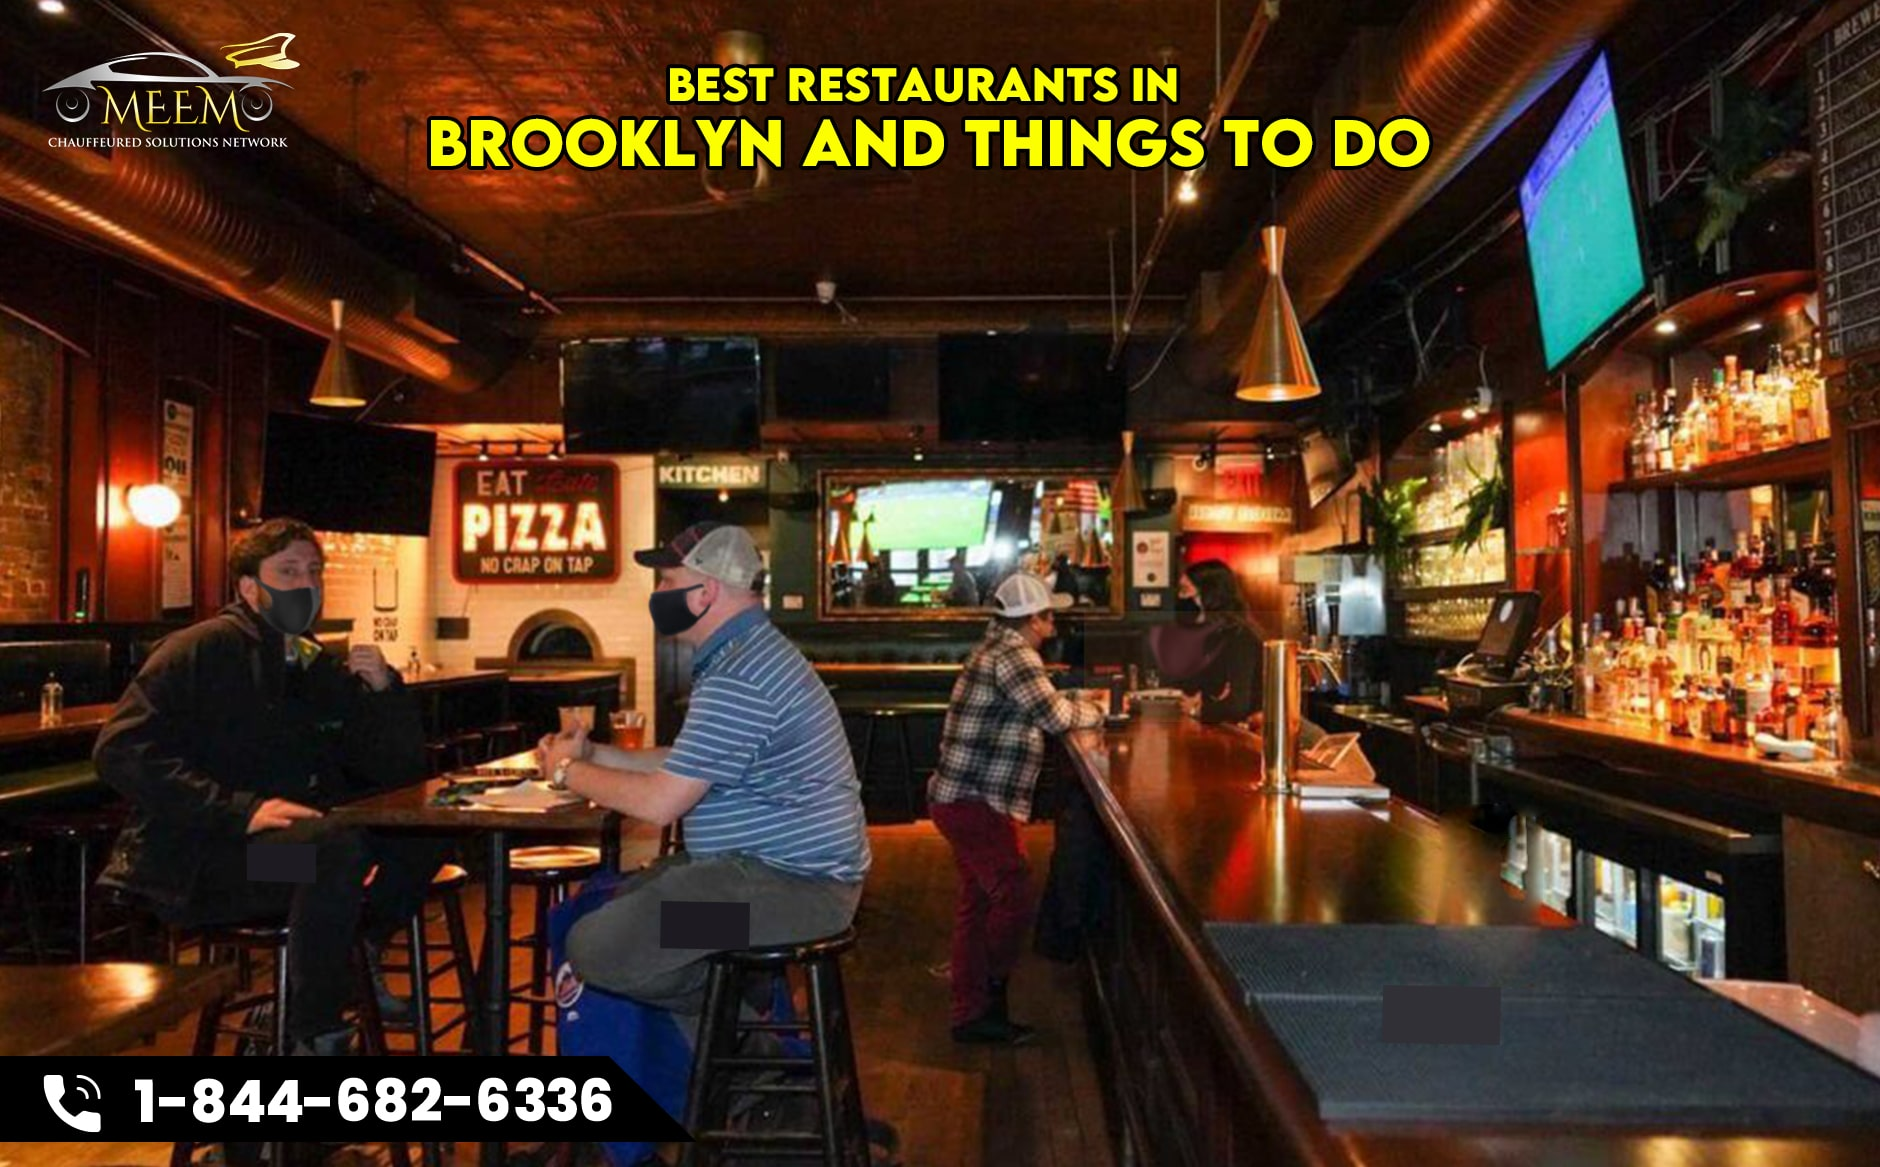 Best Restaurants in Brooklyn and Things to do